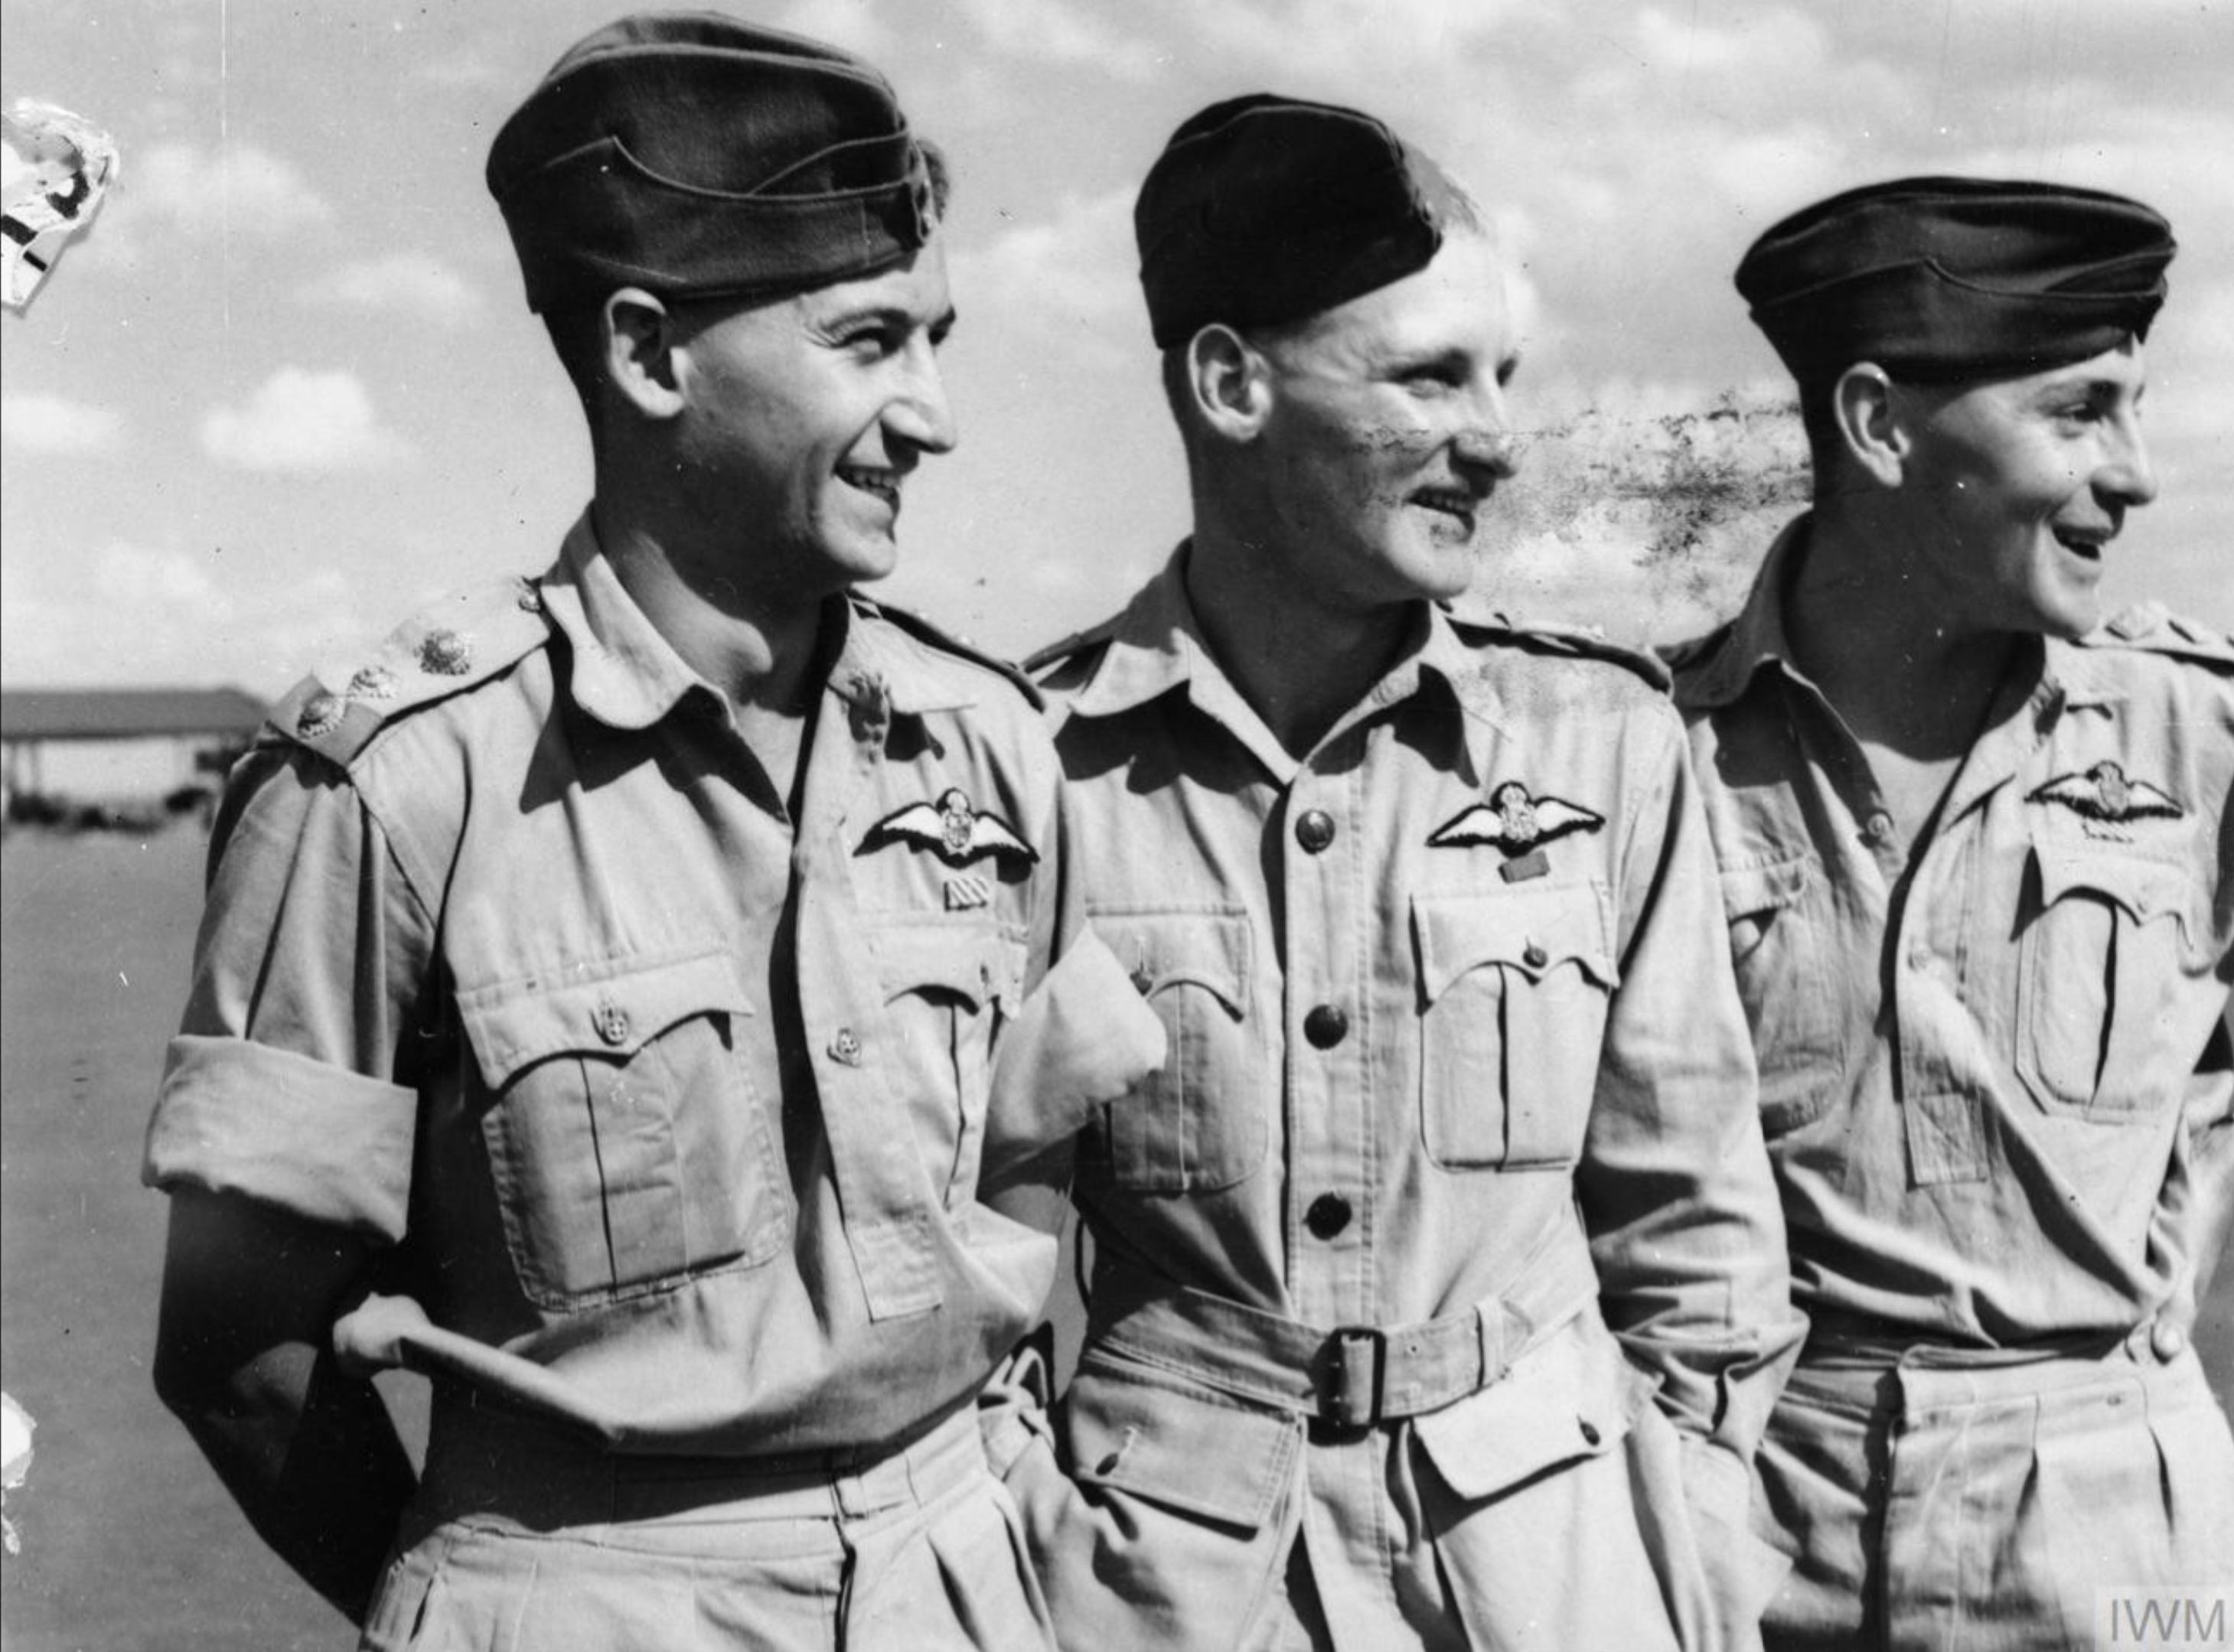 Aircrew SAAF 1Sqn Jack Frost DFC Bob Kershaw DSO and SvB Theron DFC at Addis Ababa Abyssinia IWM E3415